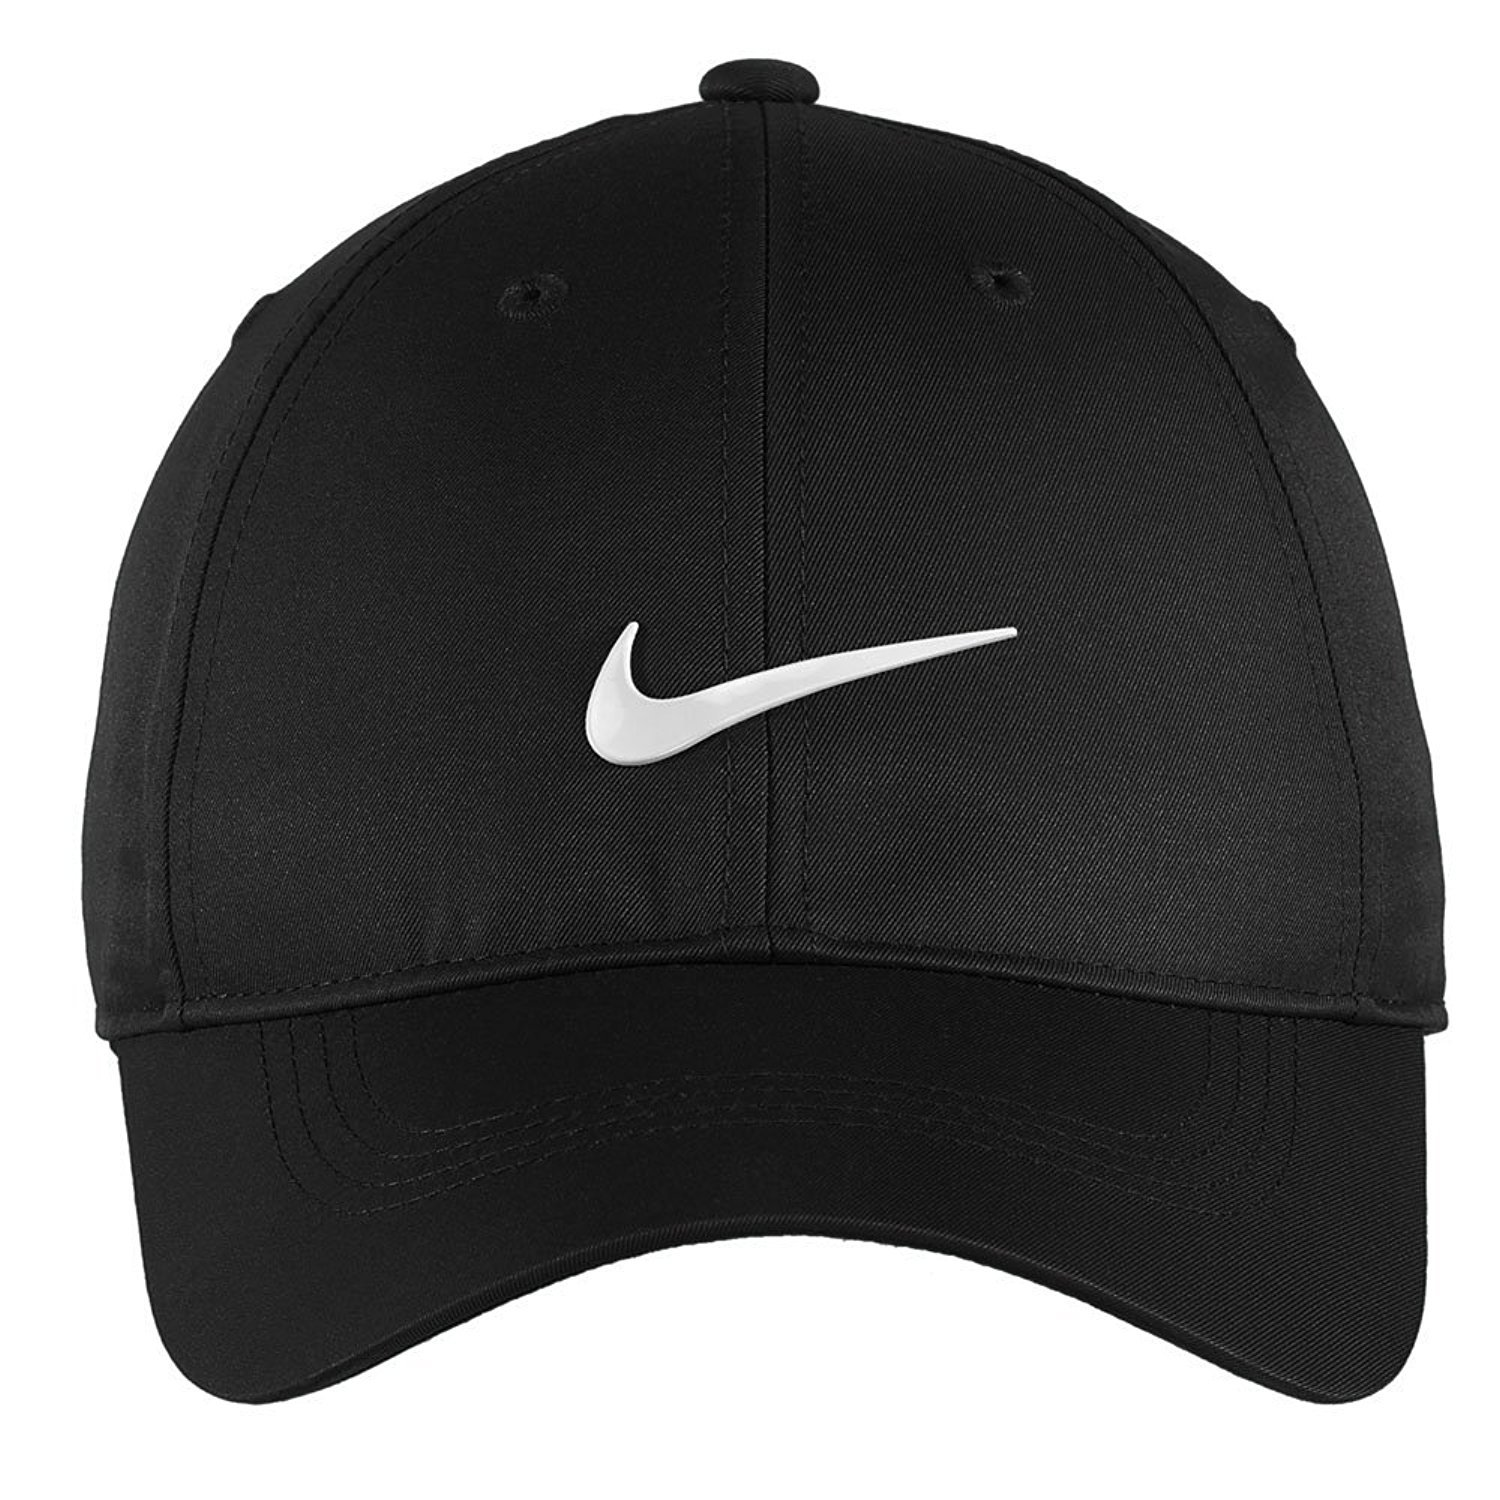 Amazon.com  Nike Authentic Dri-FIT Low Profile Swoosh Front Adjustable Cap  - Black  Sports   Outdoors 1ec40ad23e134